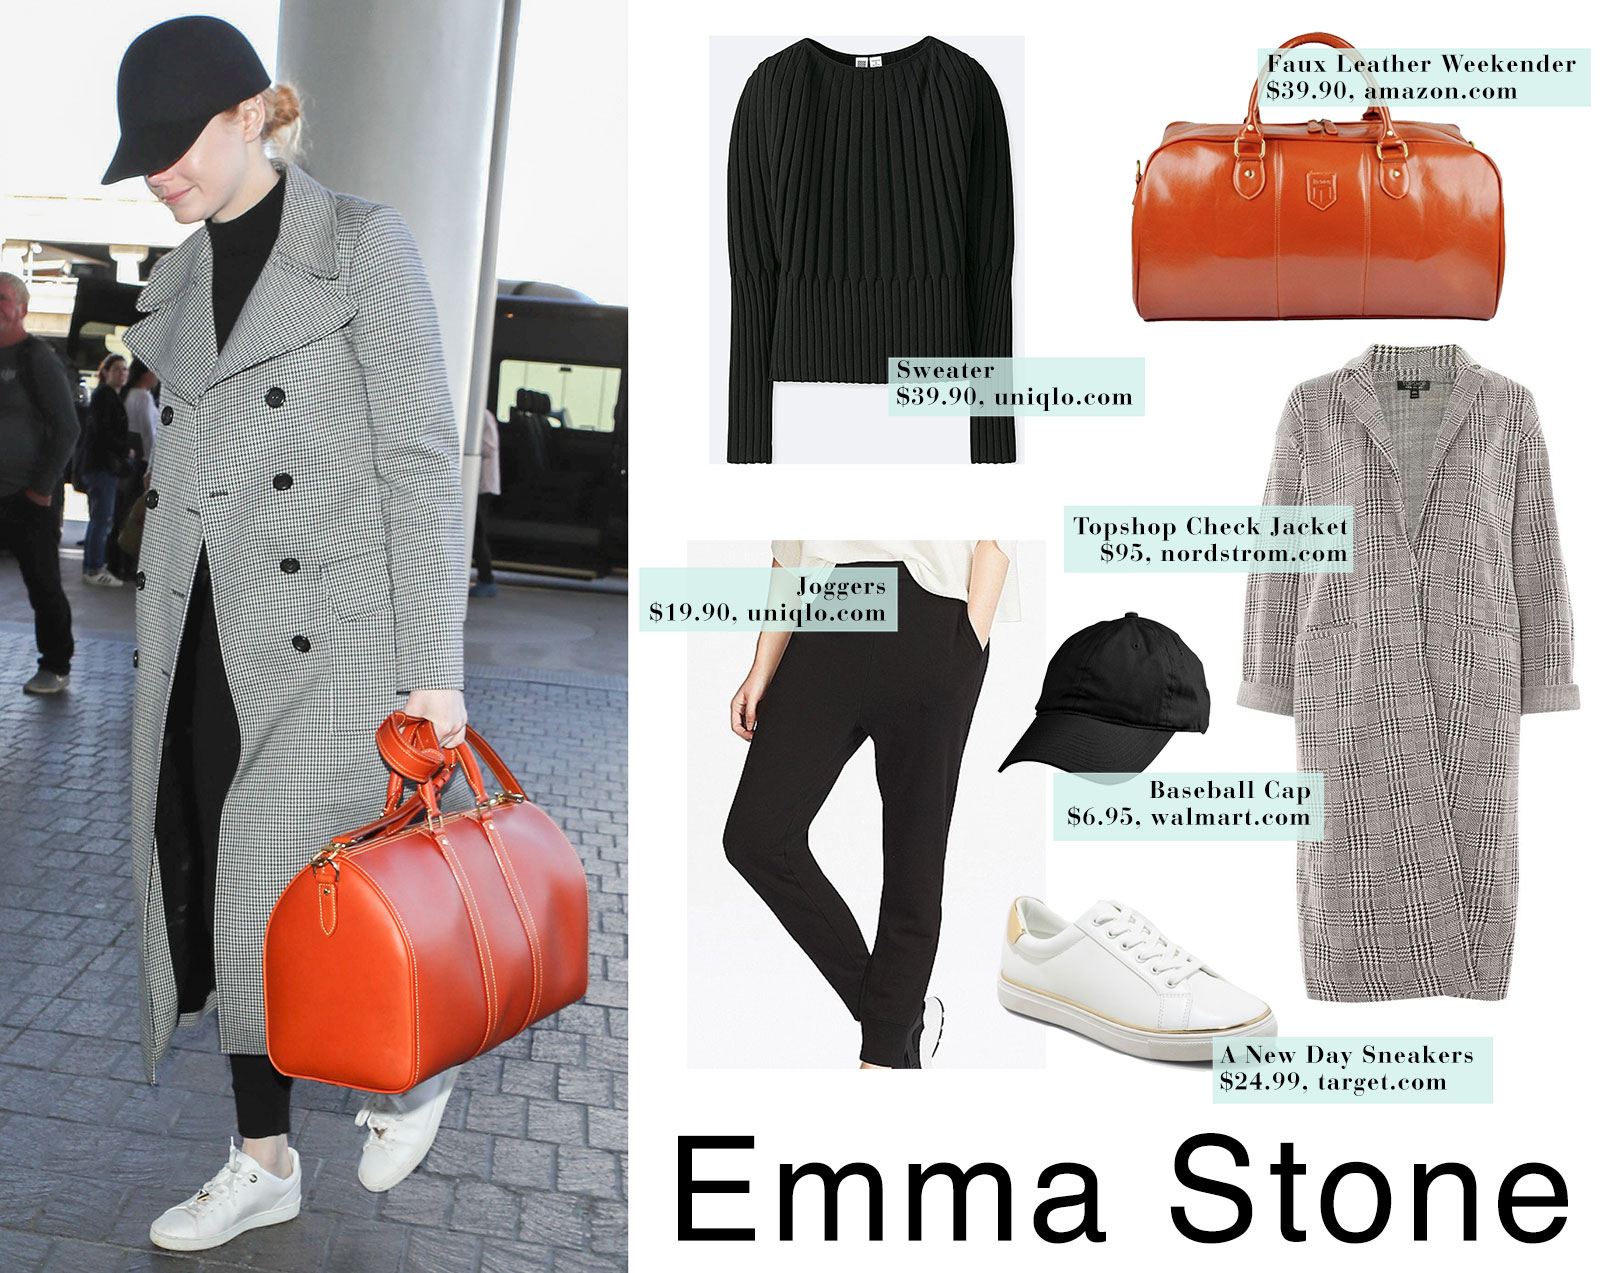 Emma Stone travels in a black monochromatic look with white sneakers, leather duffel weekender suitcase, black baseball cap and gray check plaid trench coat.